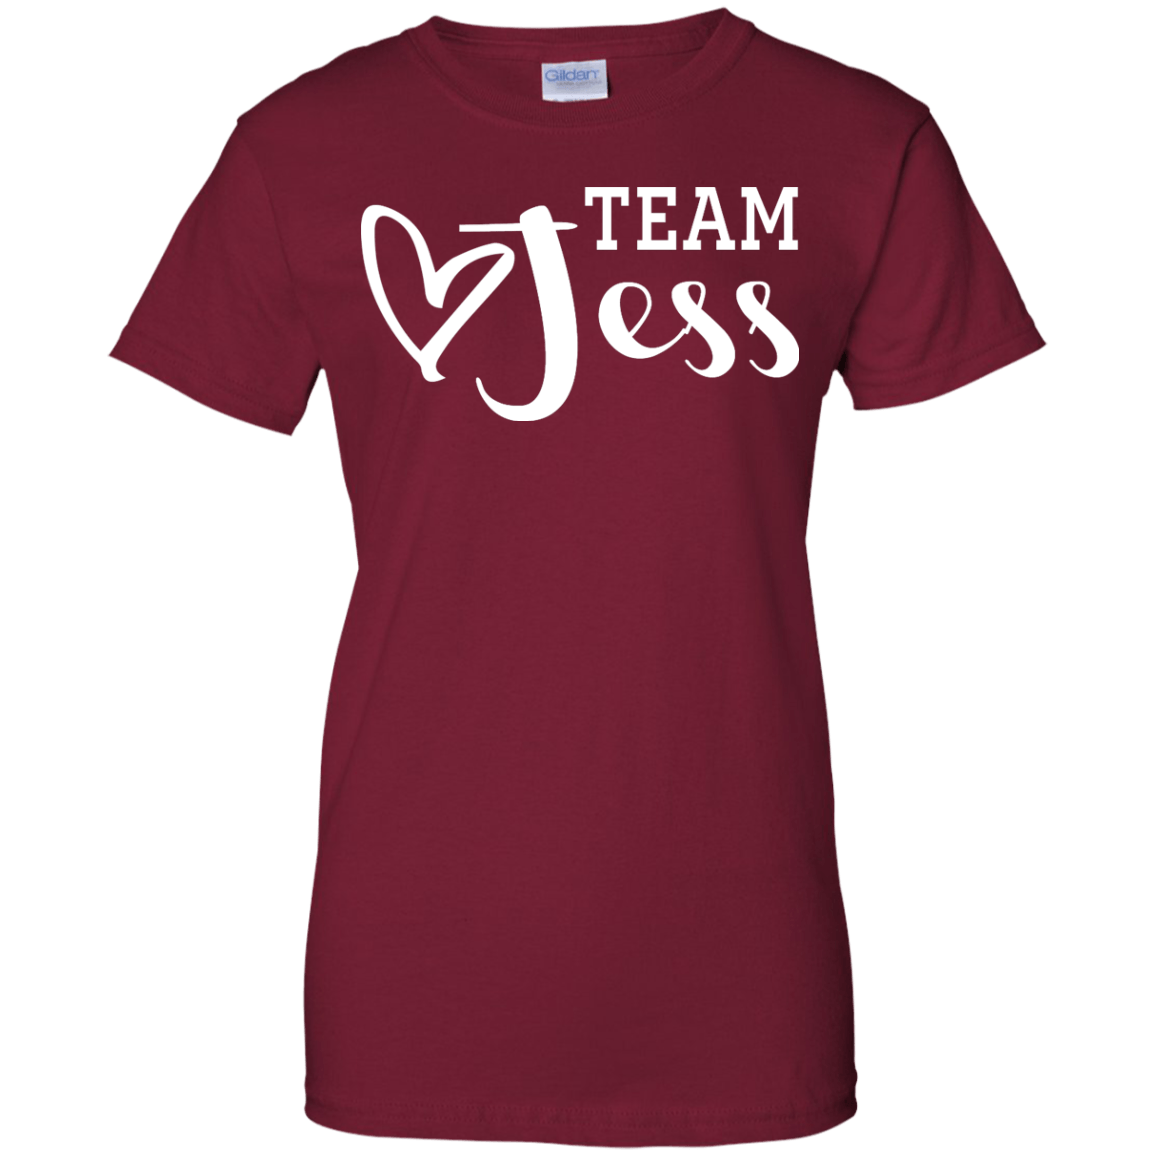 Team Jess Shirt, Gilmore Girls Movie T Shirt